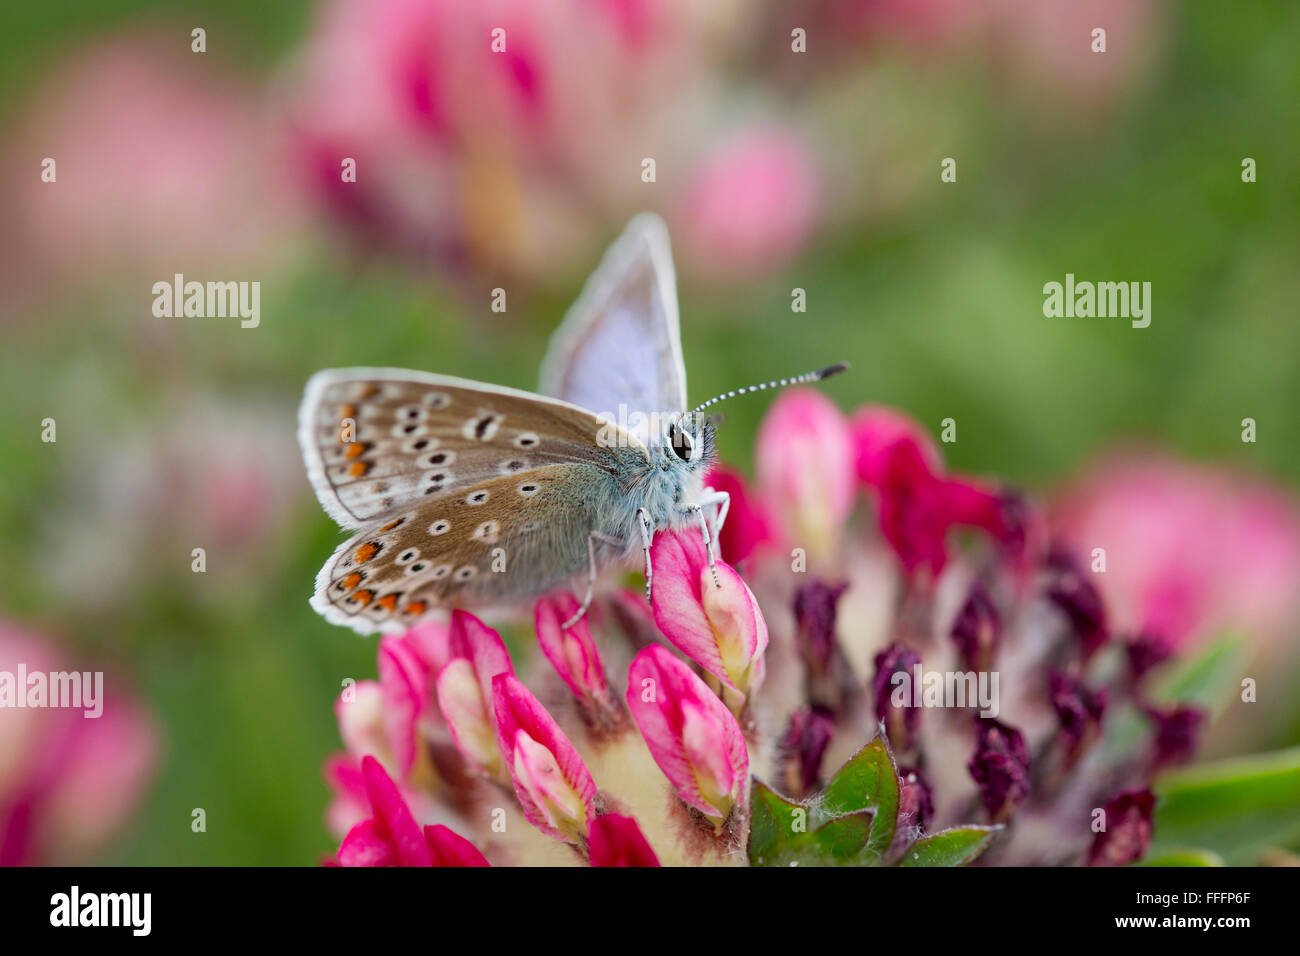 Common Blue Butterfly; Polyommatus icarus Single Female on Flower Anglesey; UK - Stock Image